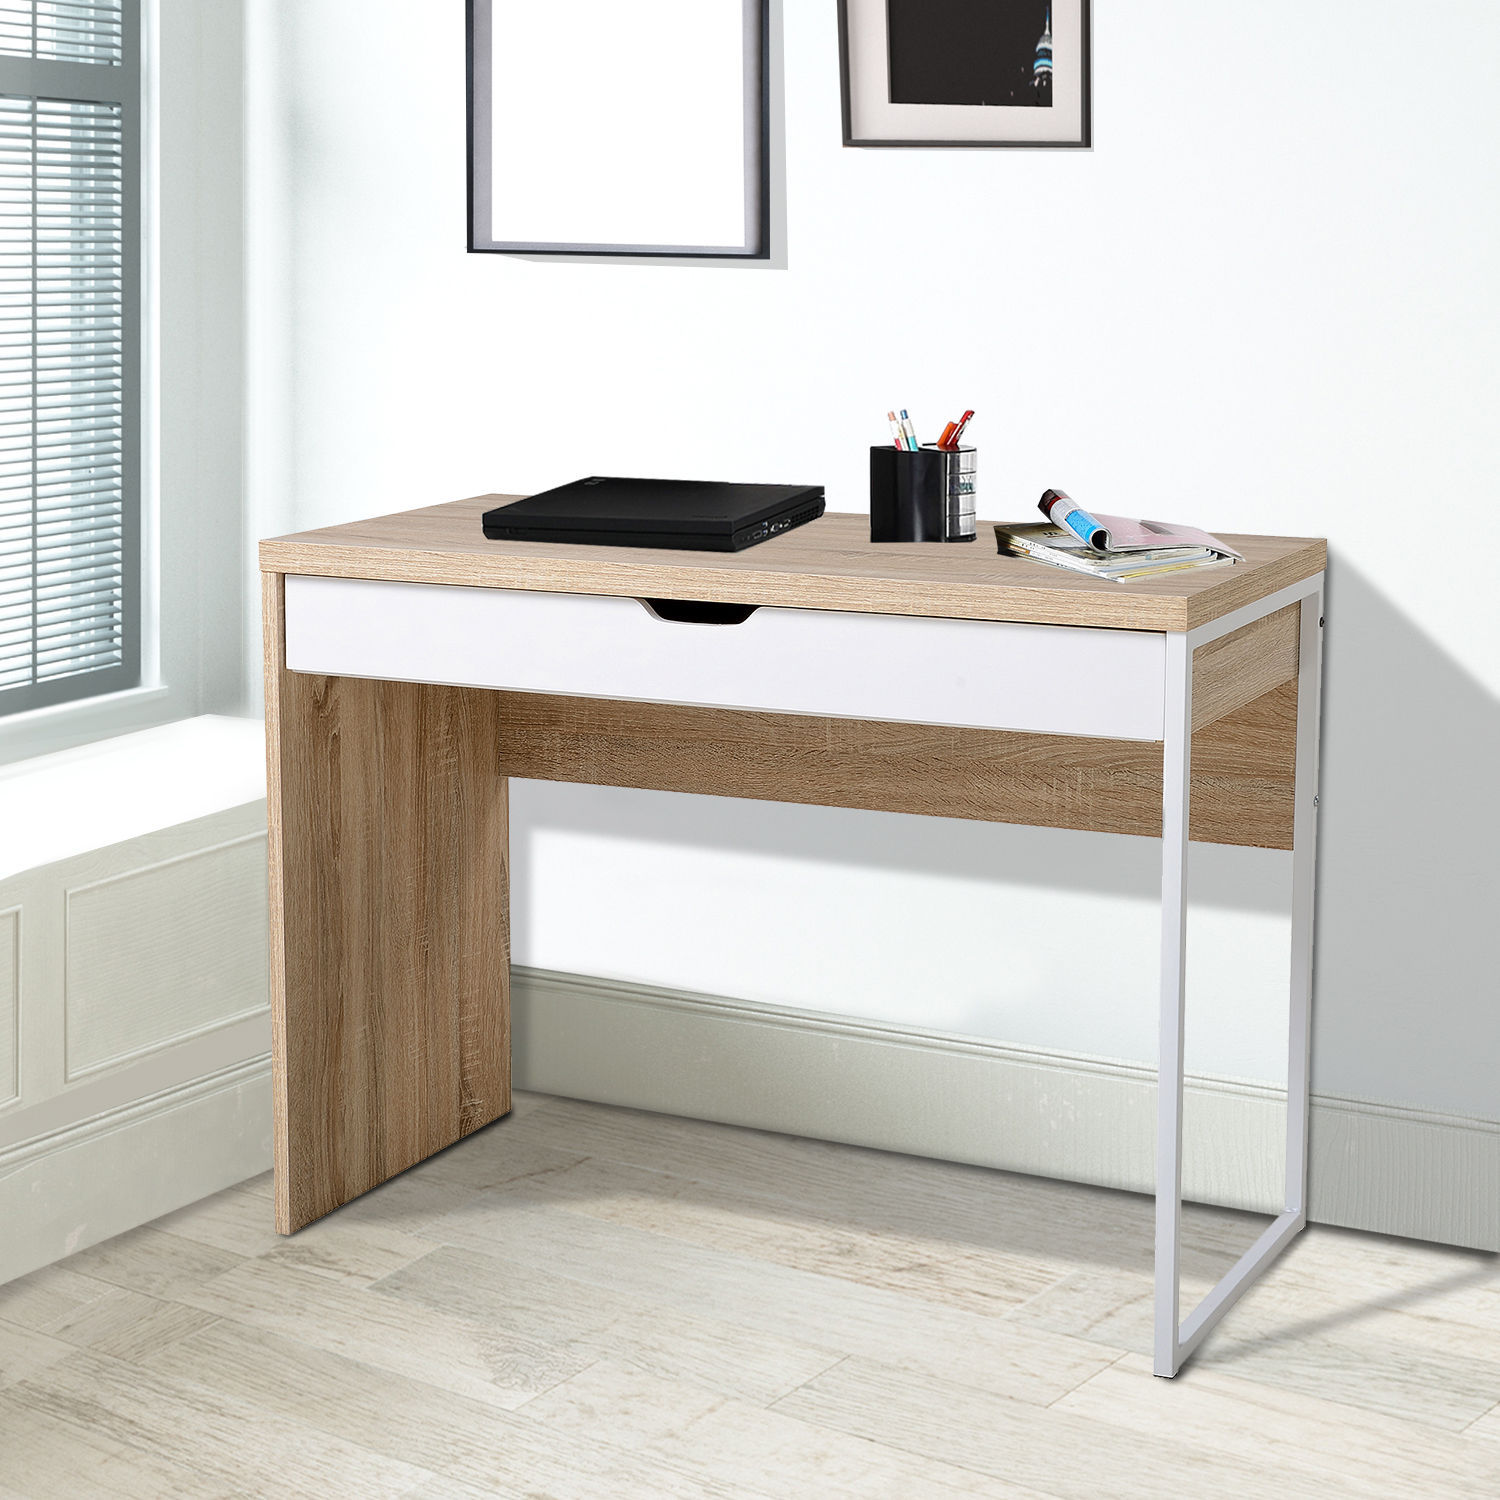 Details about white computer desk work station writing table home office furniture w drawer